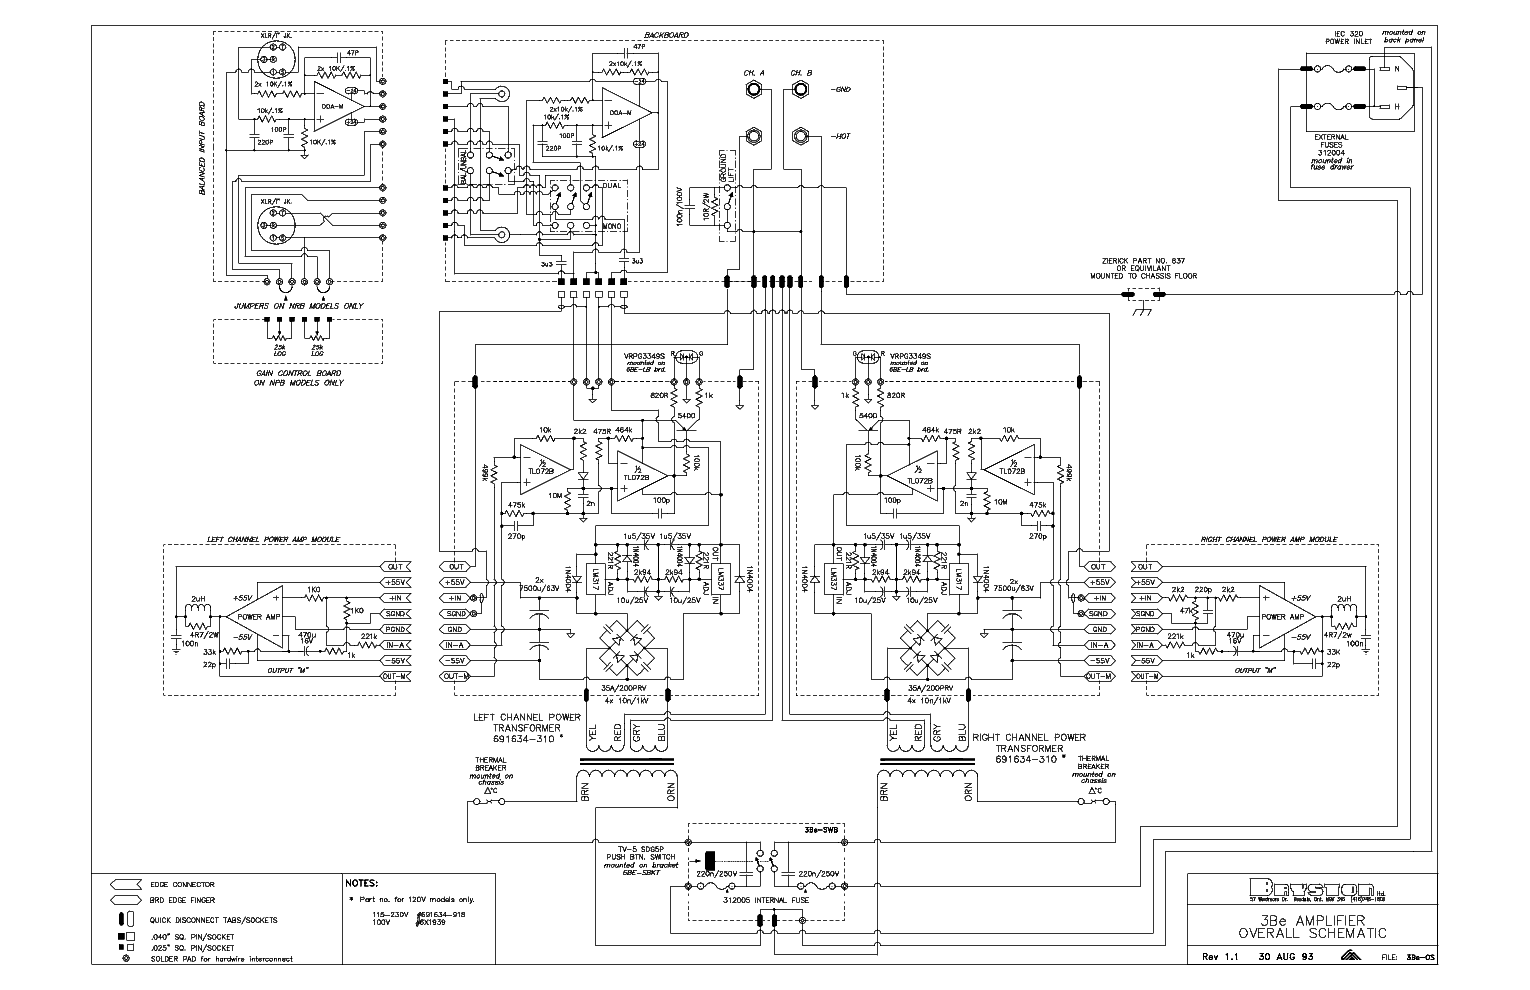 BRYSTON 3BE AMPLIFIER SCHEMATICS SCH service manual (1st page)